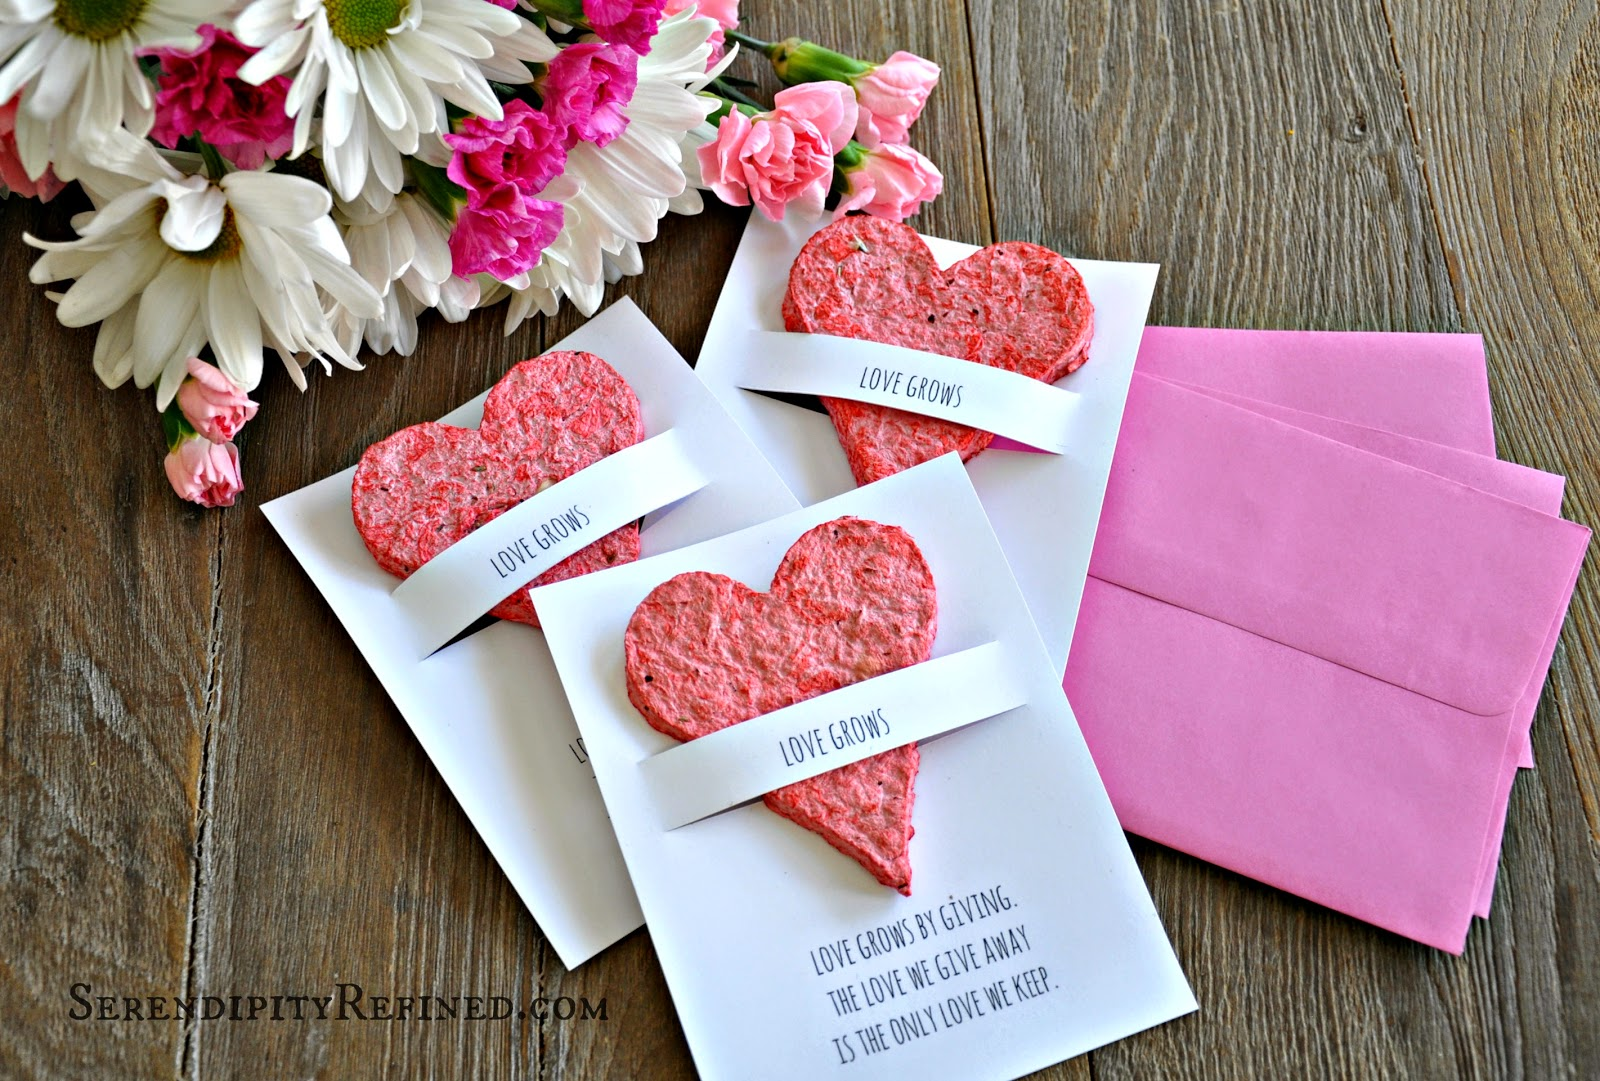 Colorful Home Decor, DIY, Crafts, Yummy Recipies, and Family Fun